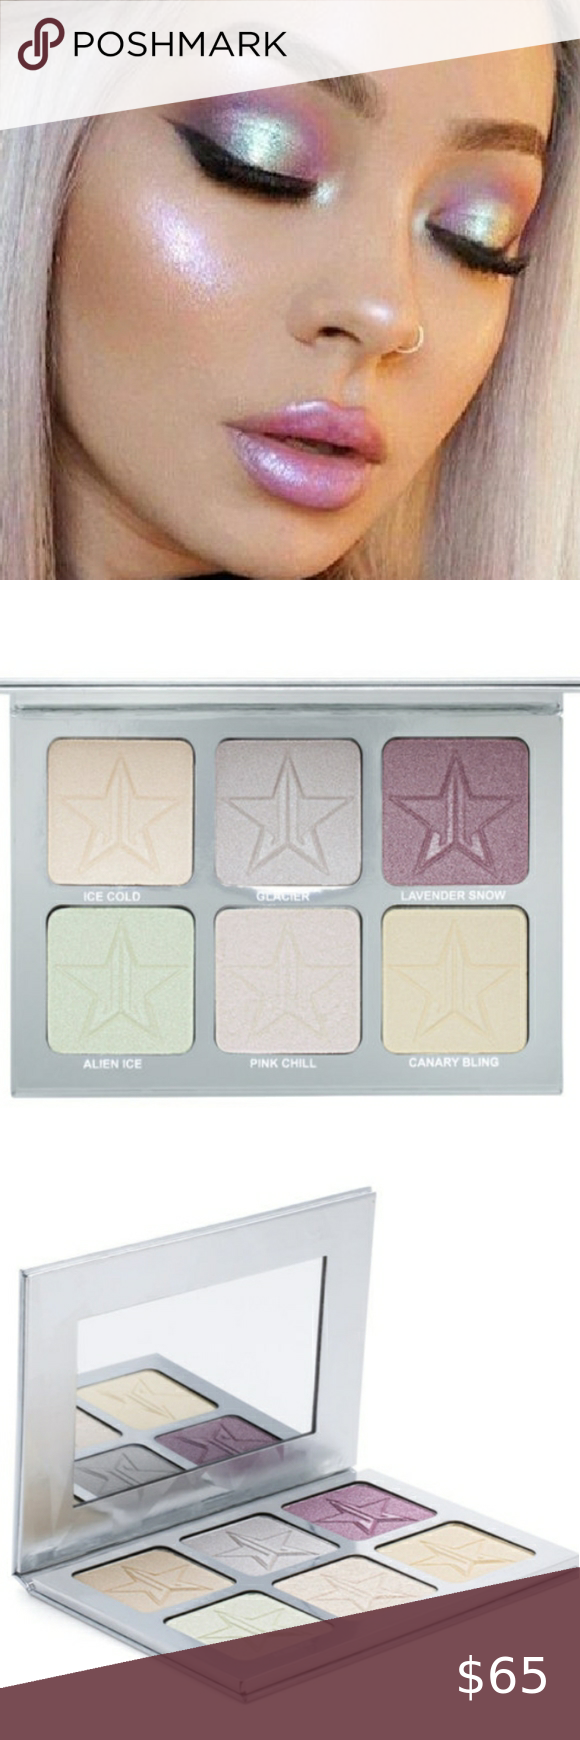 Jeffree Star Platinum Ice Skin Frost Pro Palette Bnib Highlighting Powder Is Extremely Pigmented So Get Ready To Glow Lik In 2020 Skin Frost Jeffree Star B Fashion